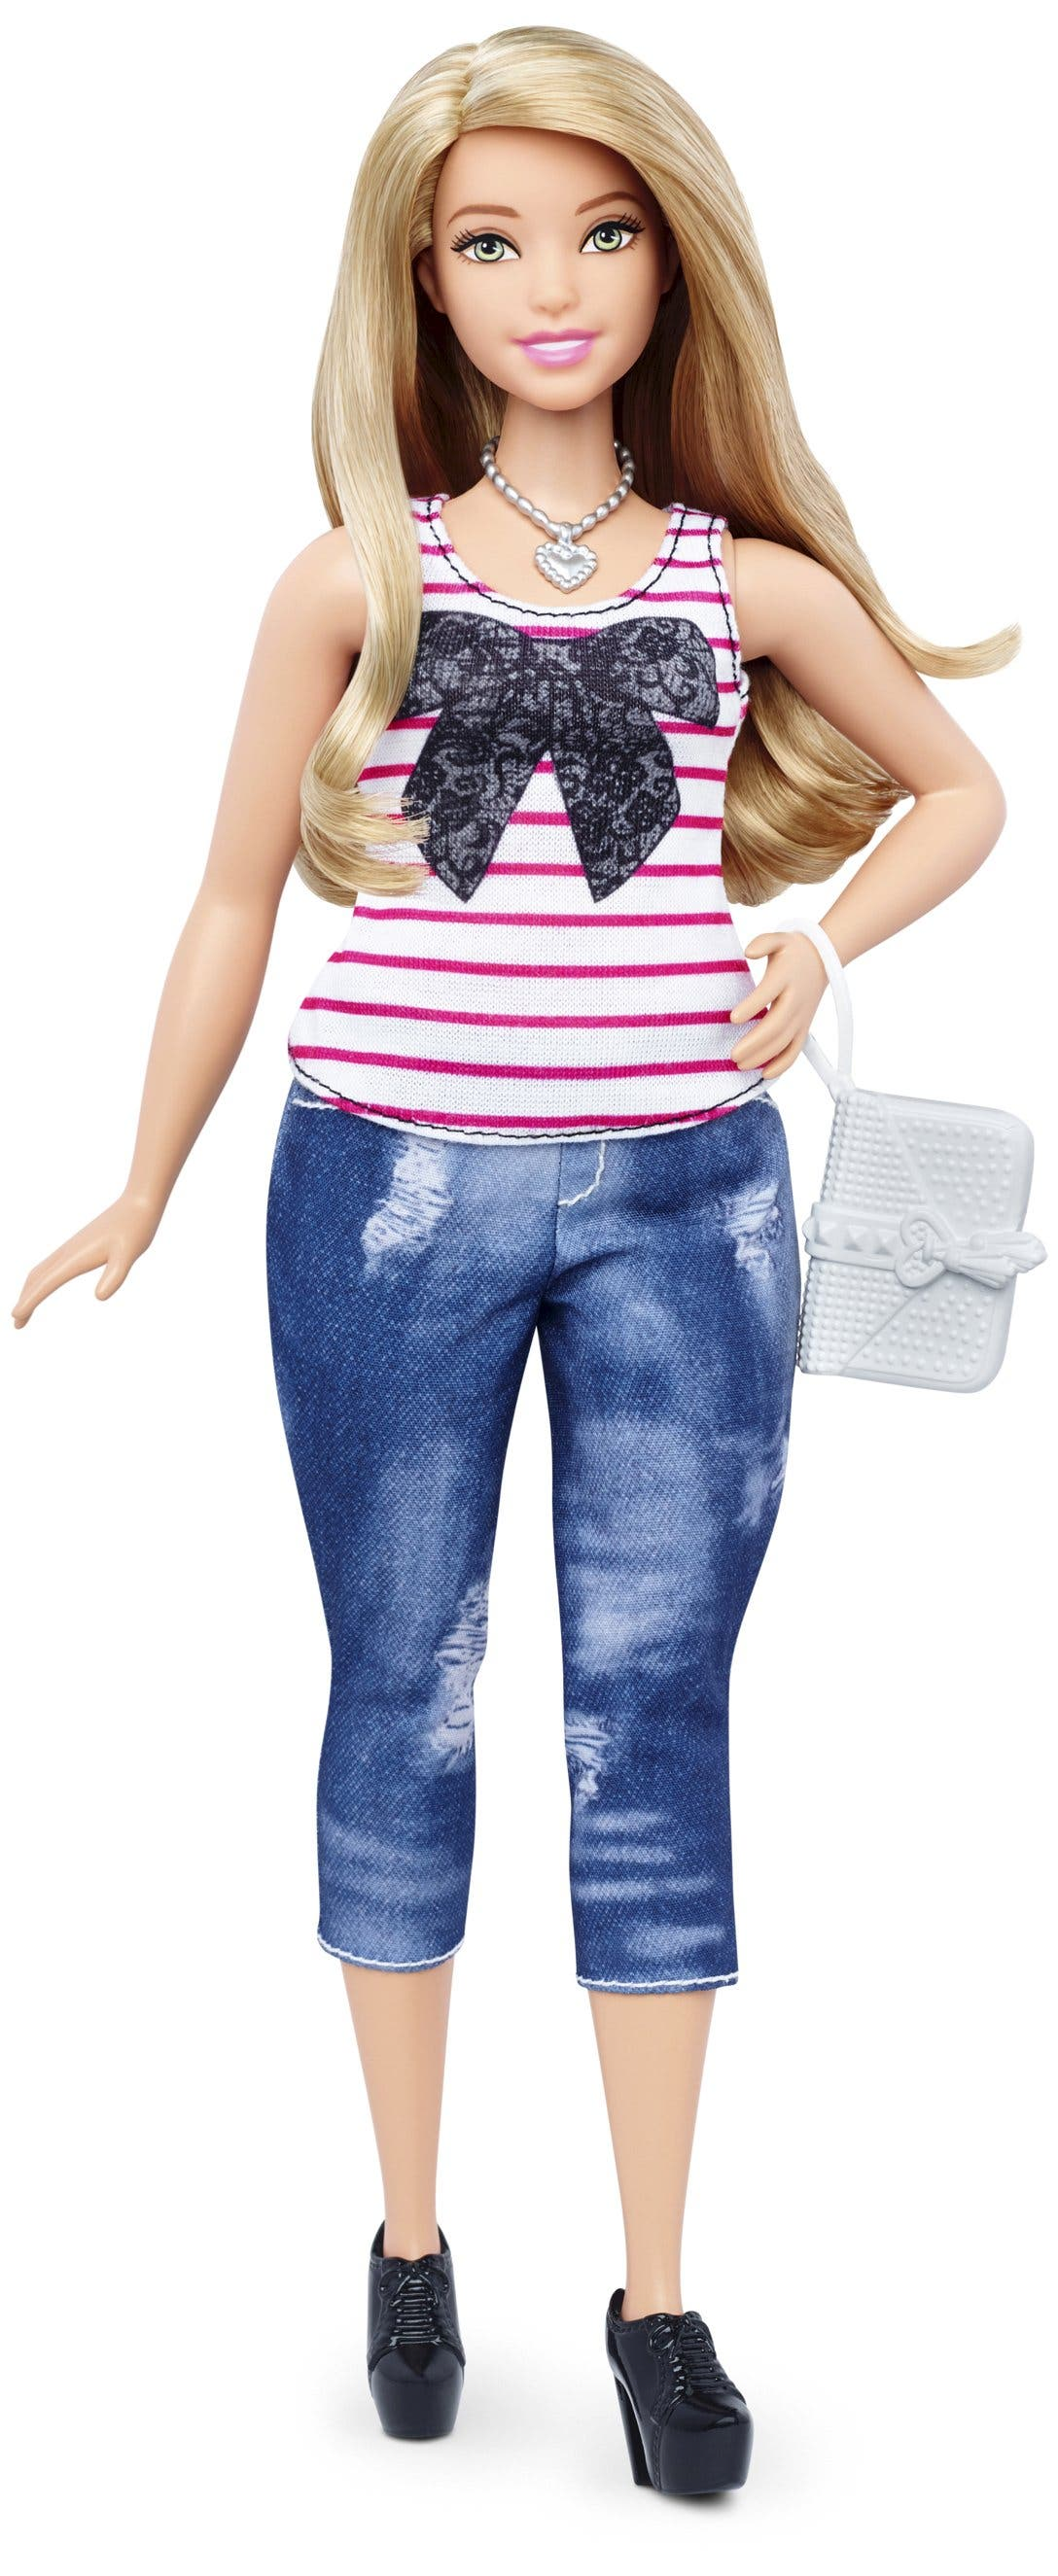 An example of the new curvy Barbie doll body shape is seen in a image released by Mattel on January 28, 2016. Barbie, the world's most famous doll, has a new body. In fact, she has three new bodies - petite, tall and curvy. Some 57 years after the impossibly busty and narrow-waisted blue-eyed Barbie doll was first introduced, California-based toy maker Mattel on Thursday released the new models, which it says better reflect a changing world. REUTERS/Mattel/Handout via Reuters ATTENTION EDITORS - THIS PICTURE WAS PROVIDED BY A THIRD PARTY. REUTERS IS UNABLE TO INDEPENDENTLY VERIFY THE AUTHENTICITY, CONTENT, LOCATION OR DATE OF THIS IMAGE. FOR EDITORIAL USE ONLY. NOT FOR SALE FOR MARKETING OR ADVERTISING CAMPAIGNS. THIS PICTURE IS DISTRIBUTED EXACTLY AS RECEIVED BY REUTERS, AS A SERVICE TO CLIENTS. NO SALES. NO RESALES. NO ARCHIVE.